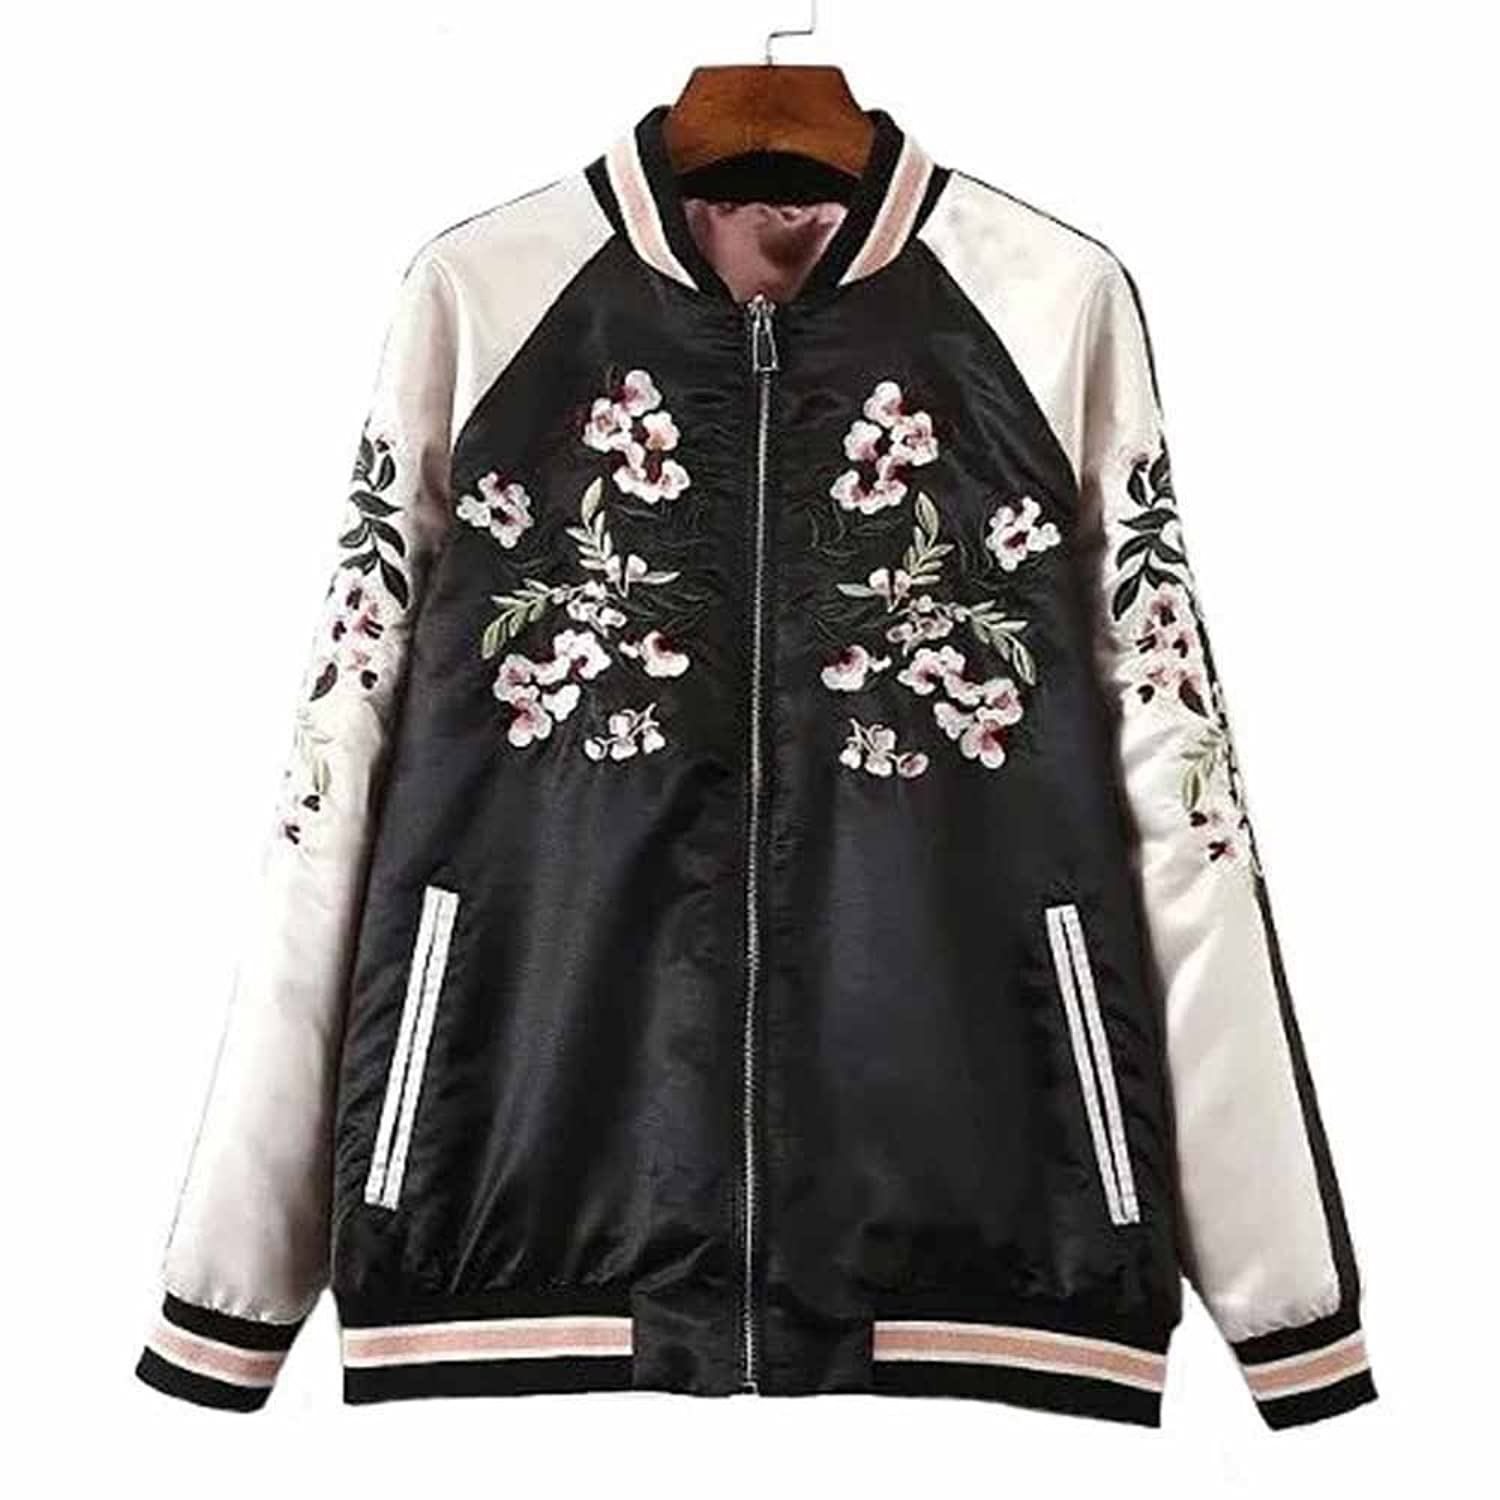 Bomber jacket